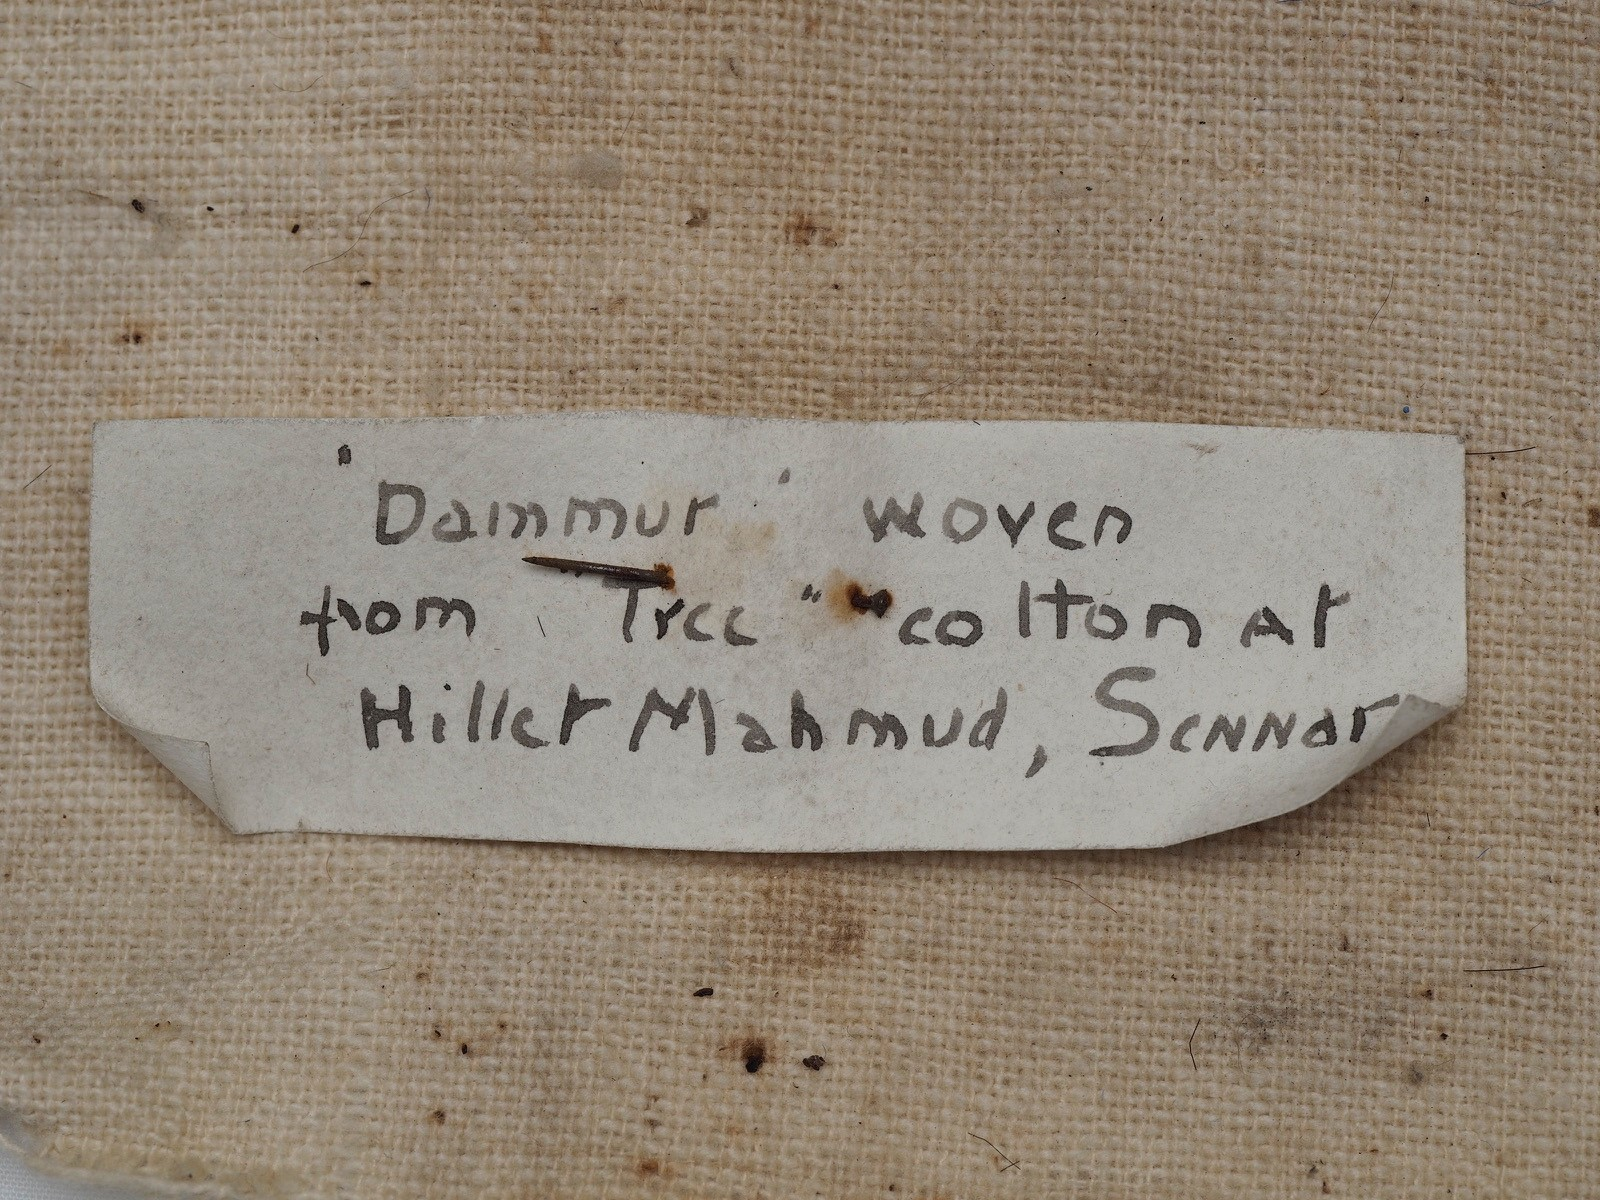 Label that goes with the 'Dammur' textile from Sudan.